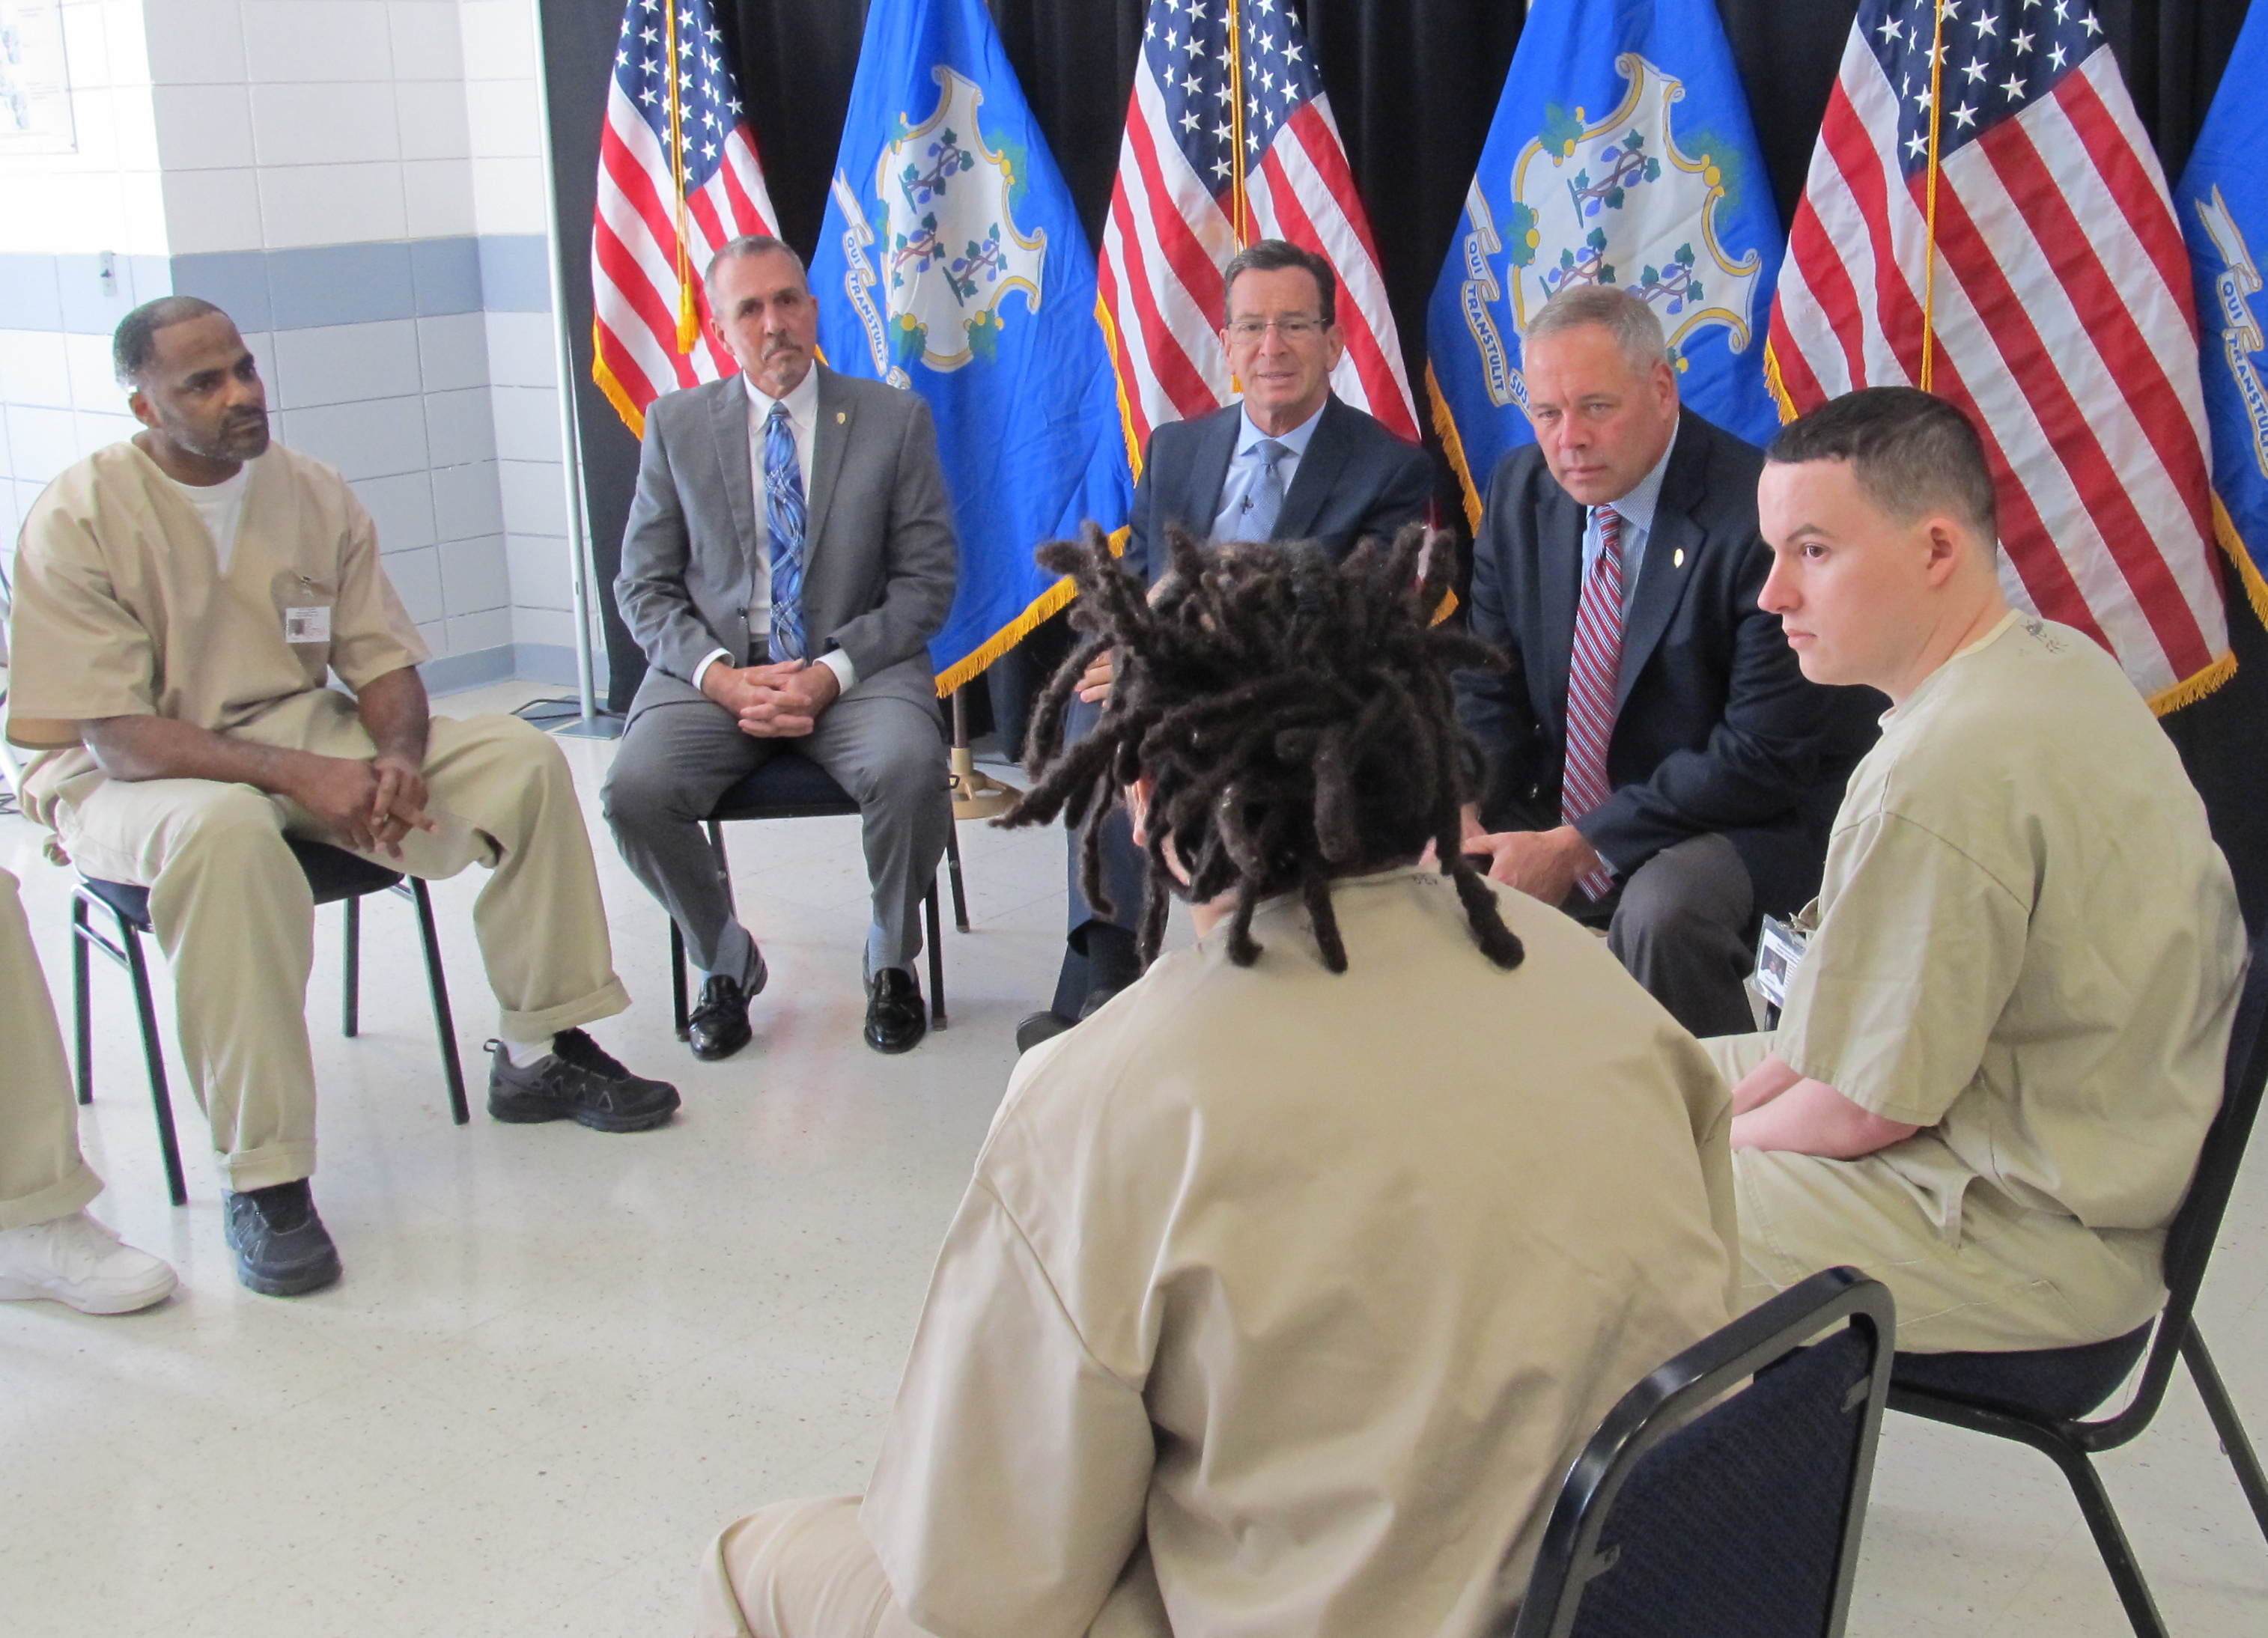 Malloy goes extra mile to thank, challenge these vets